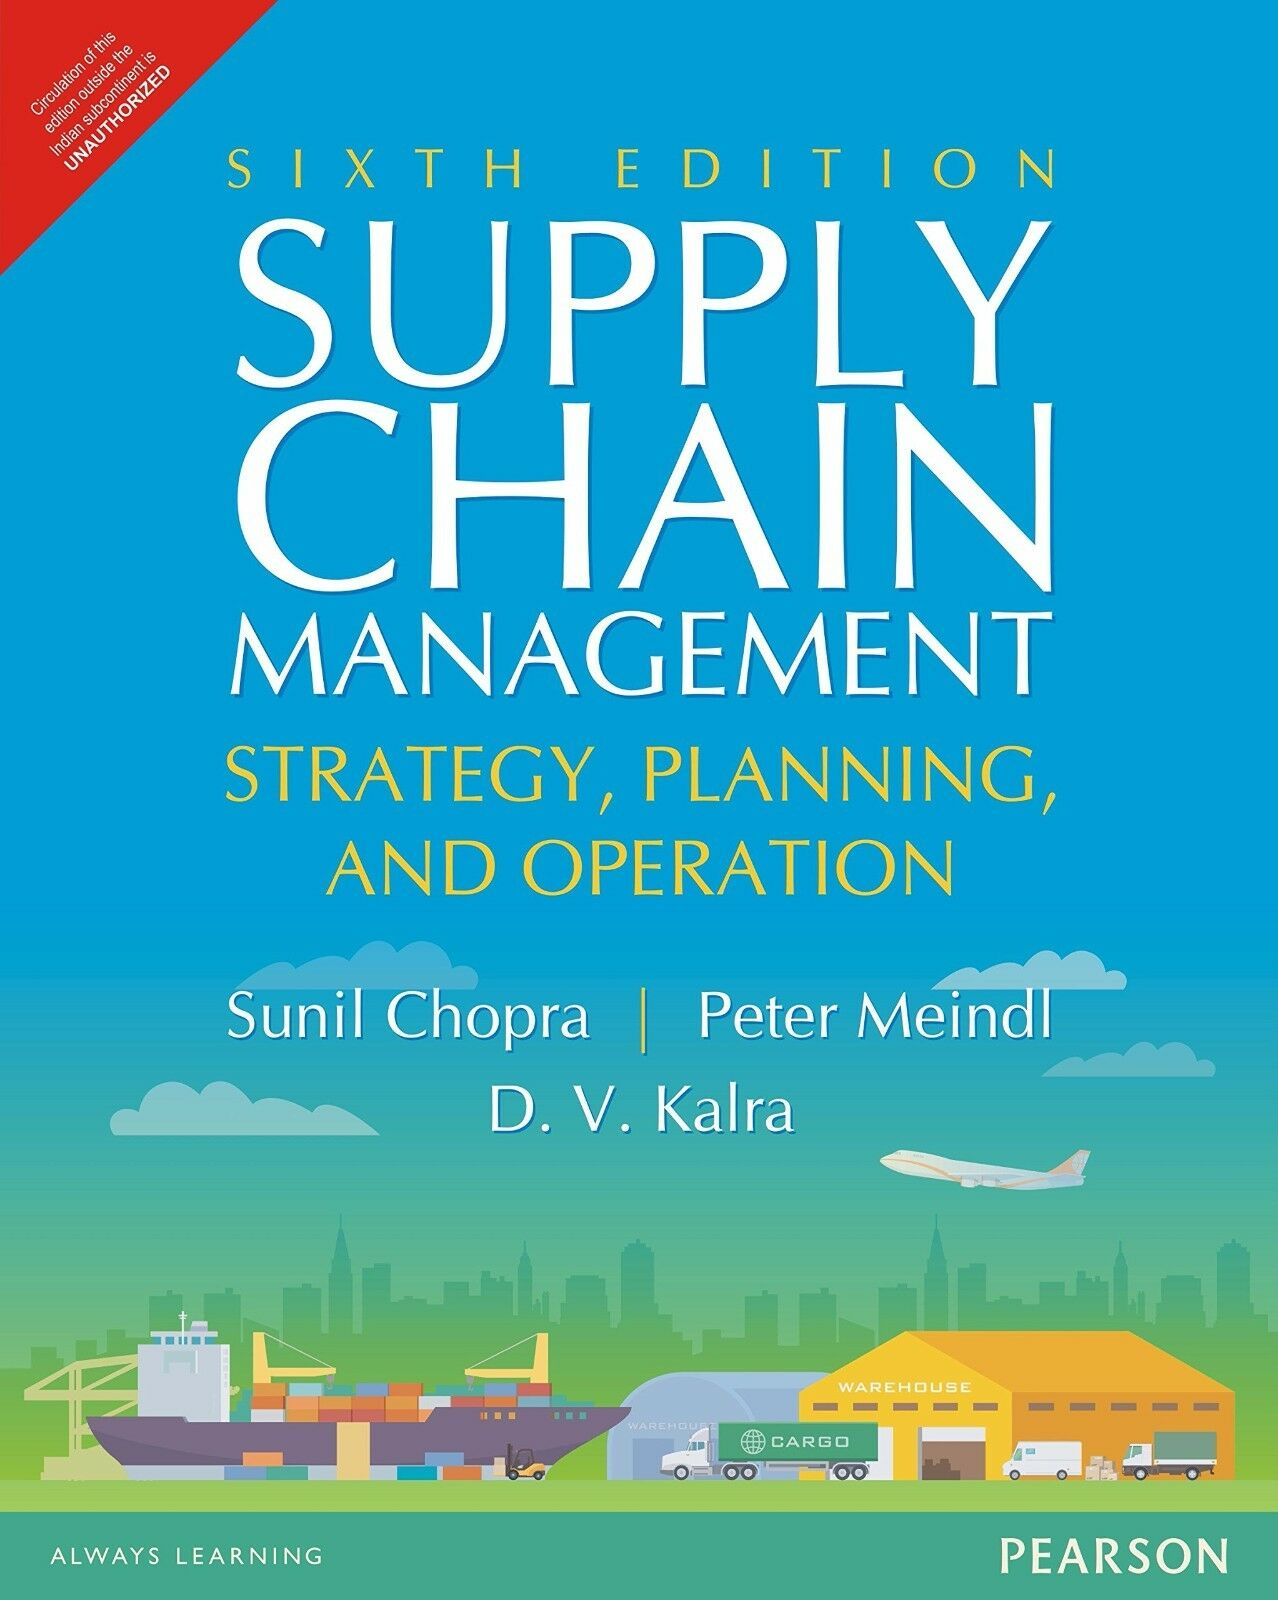 Supply chain management strategy planning and operation by peter resntentobalflowflowcomponentncel fandeluxe Choice Image